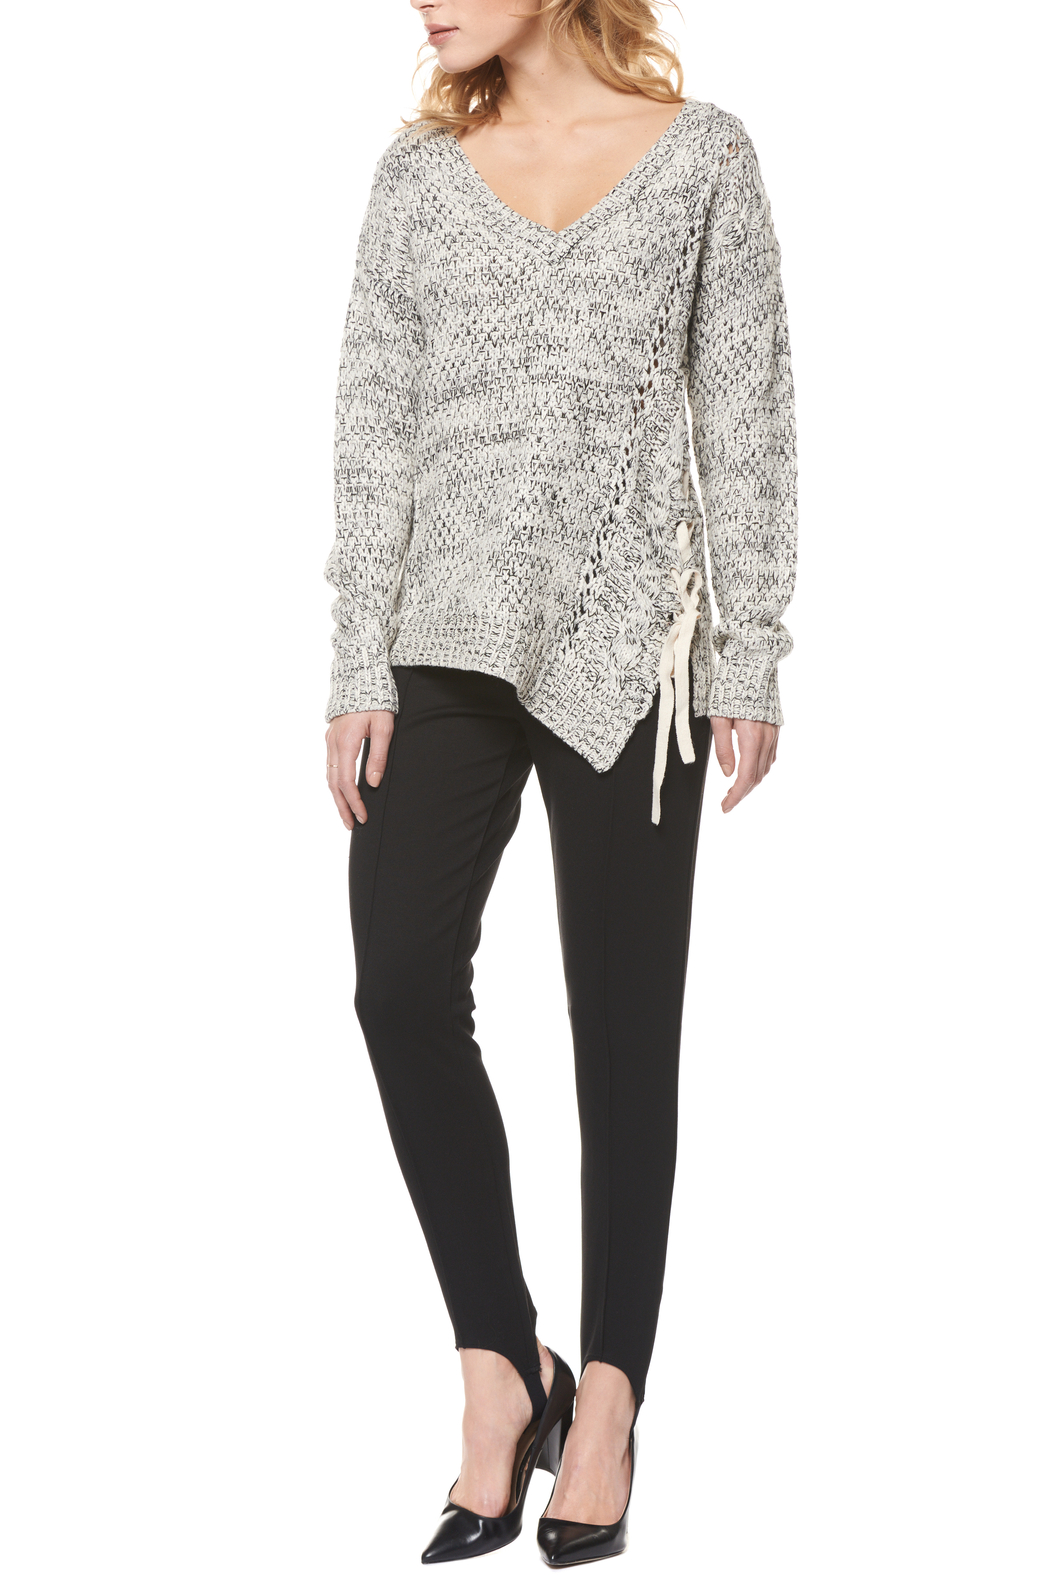 Dex Asymmetrical Lace Up Sweater - Main Image